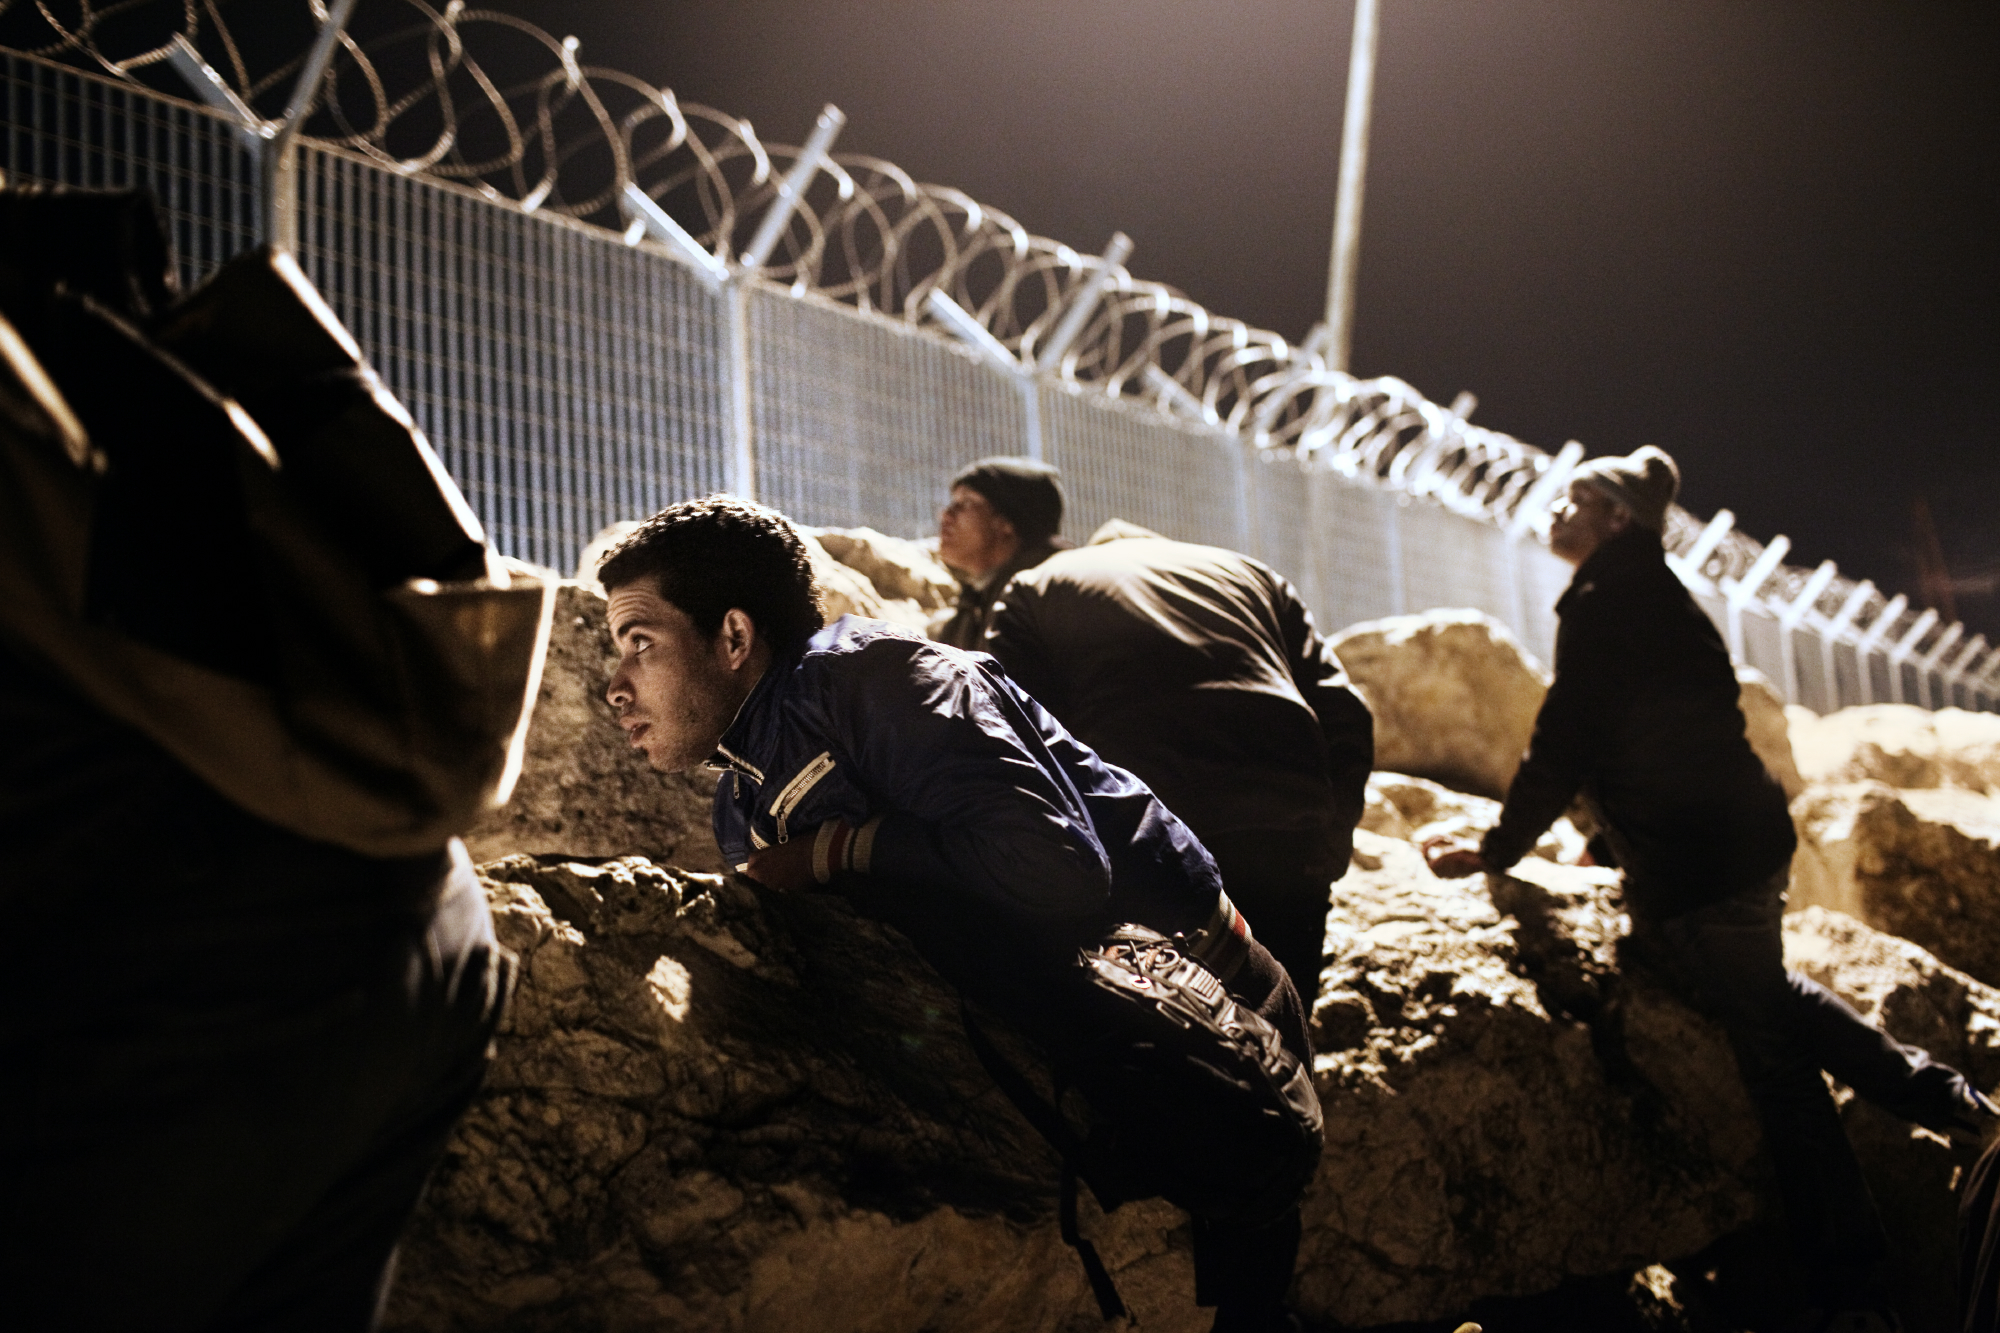 Mohamed from Morocco and his friends hiding and waiting for the right moment to illegally board a ship to Italy. 2012. Corinth, Greece.